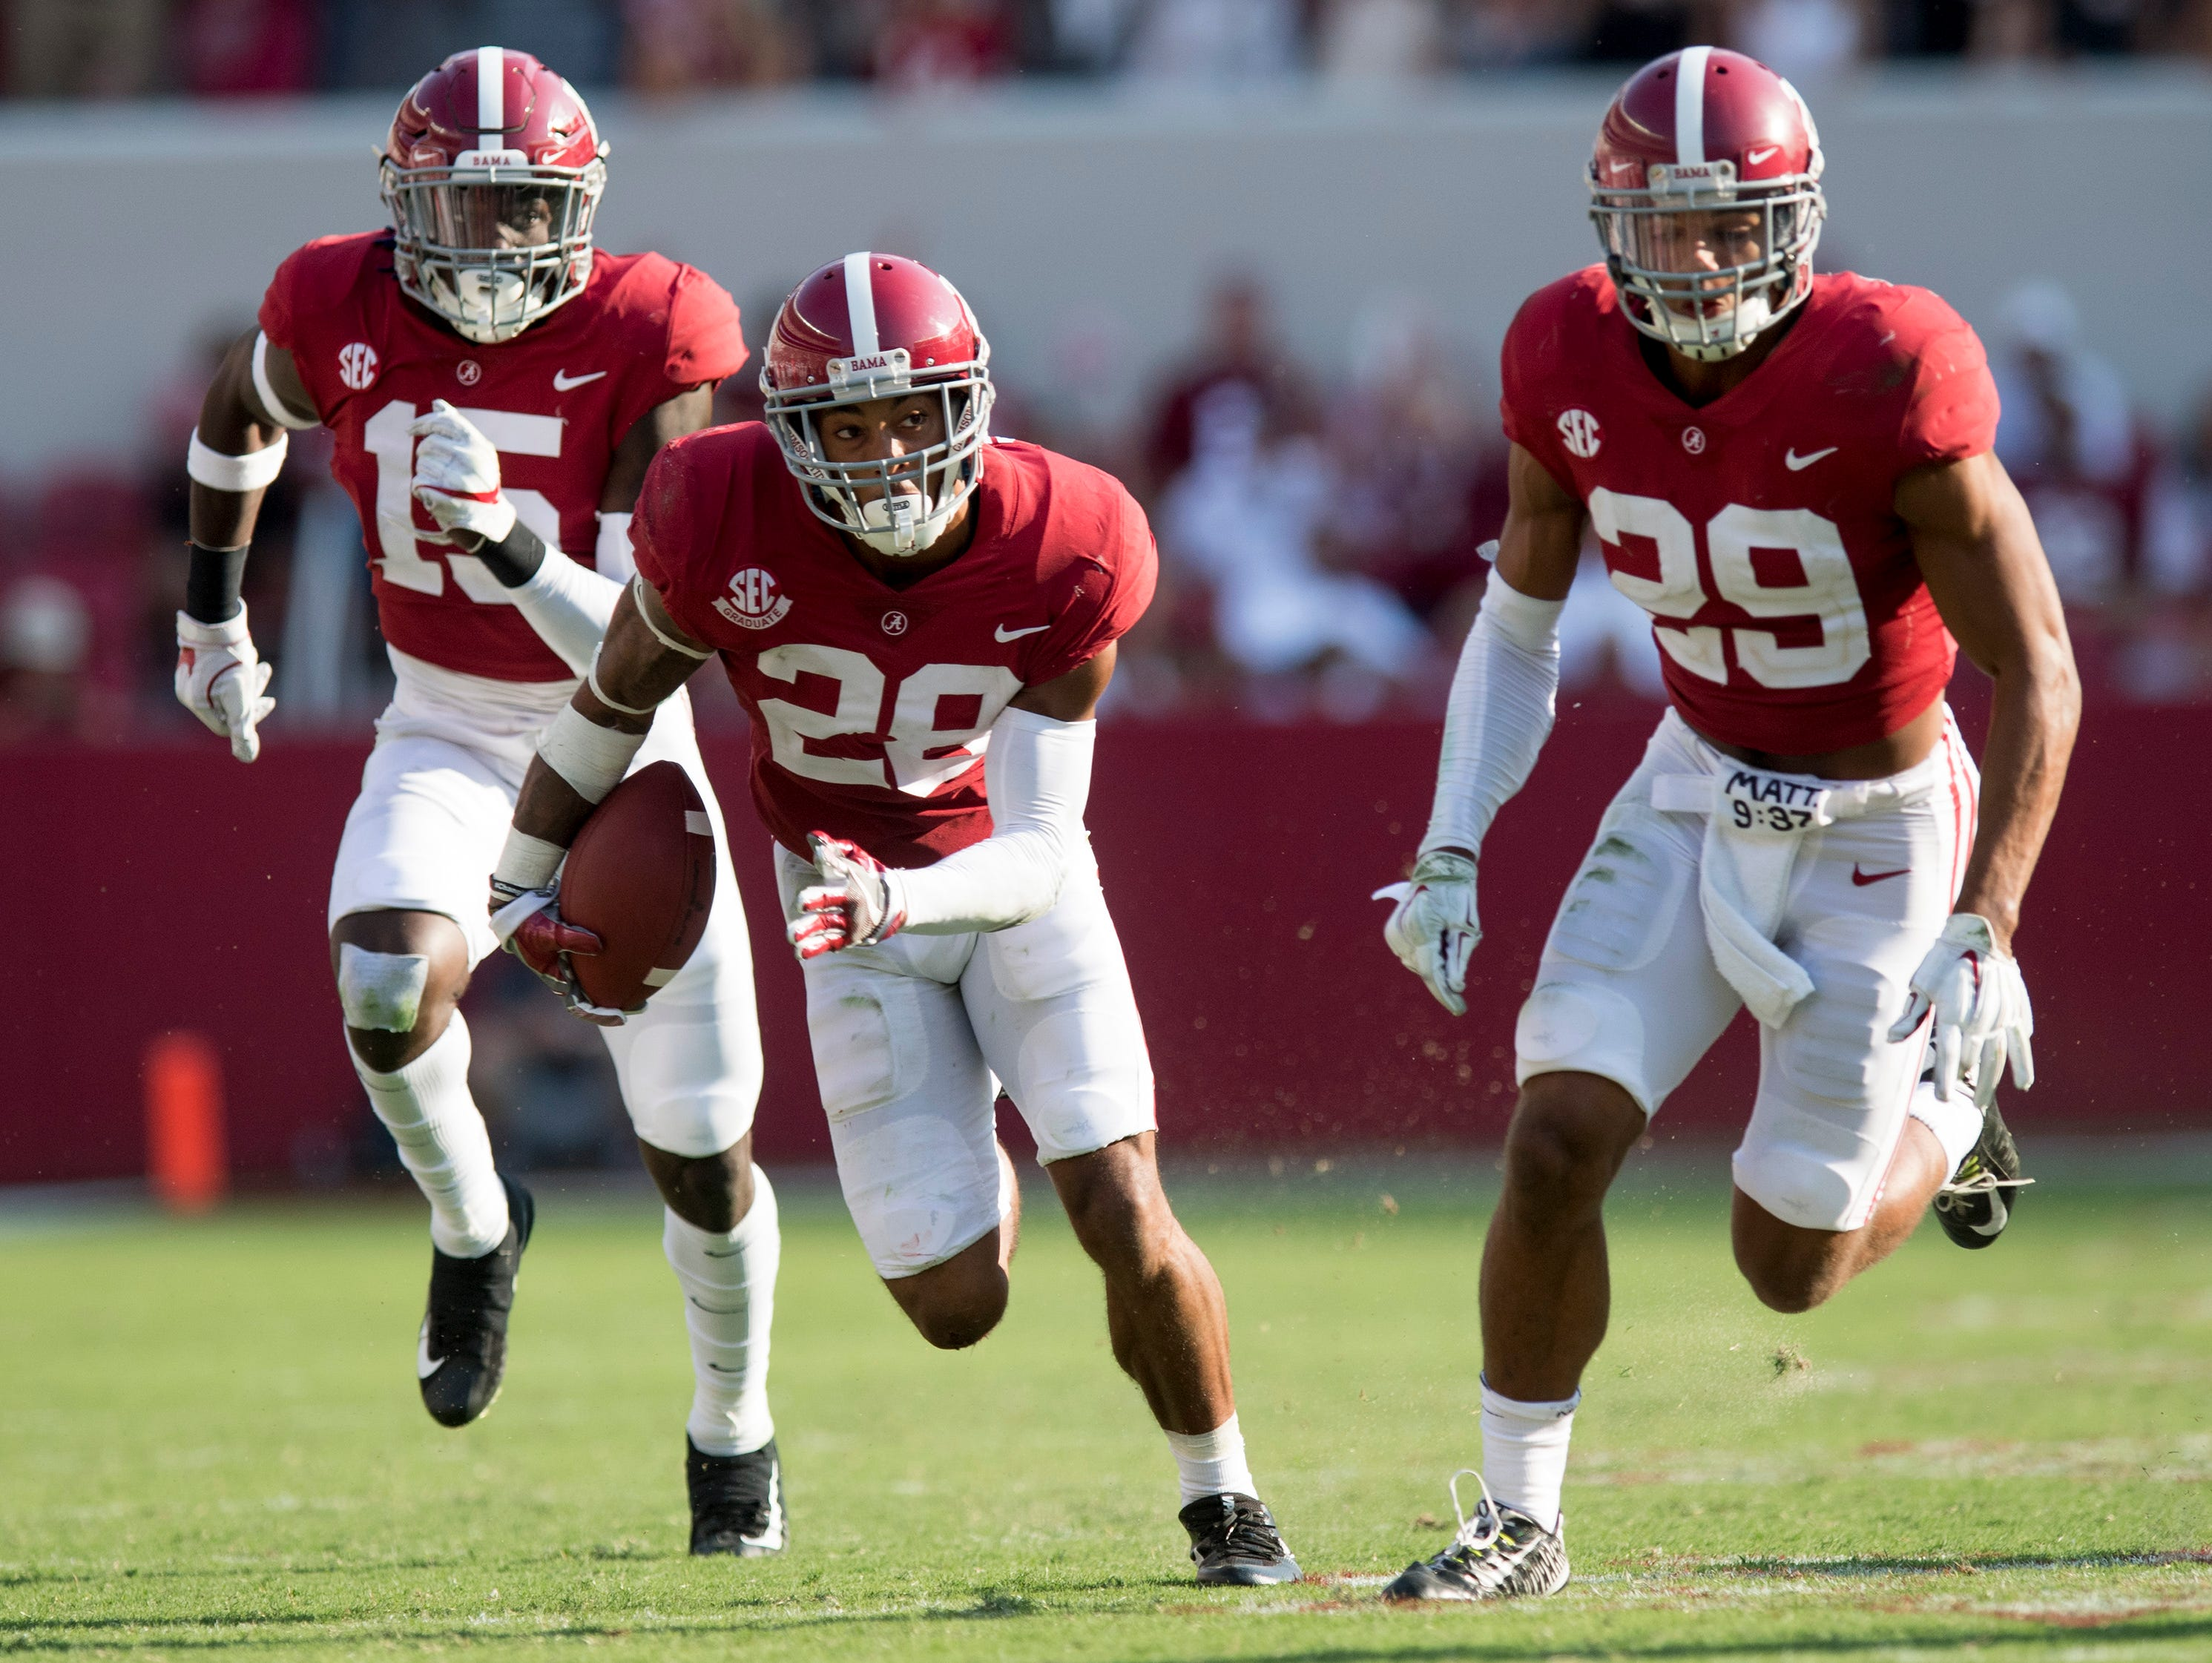 Alabama defensive back Anthony Averett (28) returns an interception against Fresno State in second half action at Bryant Denny Stadium in Tuscaloosa, Ala., on Saturday September 9, 2017. (Mickey Welsh / Montgomery Advertiser)